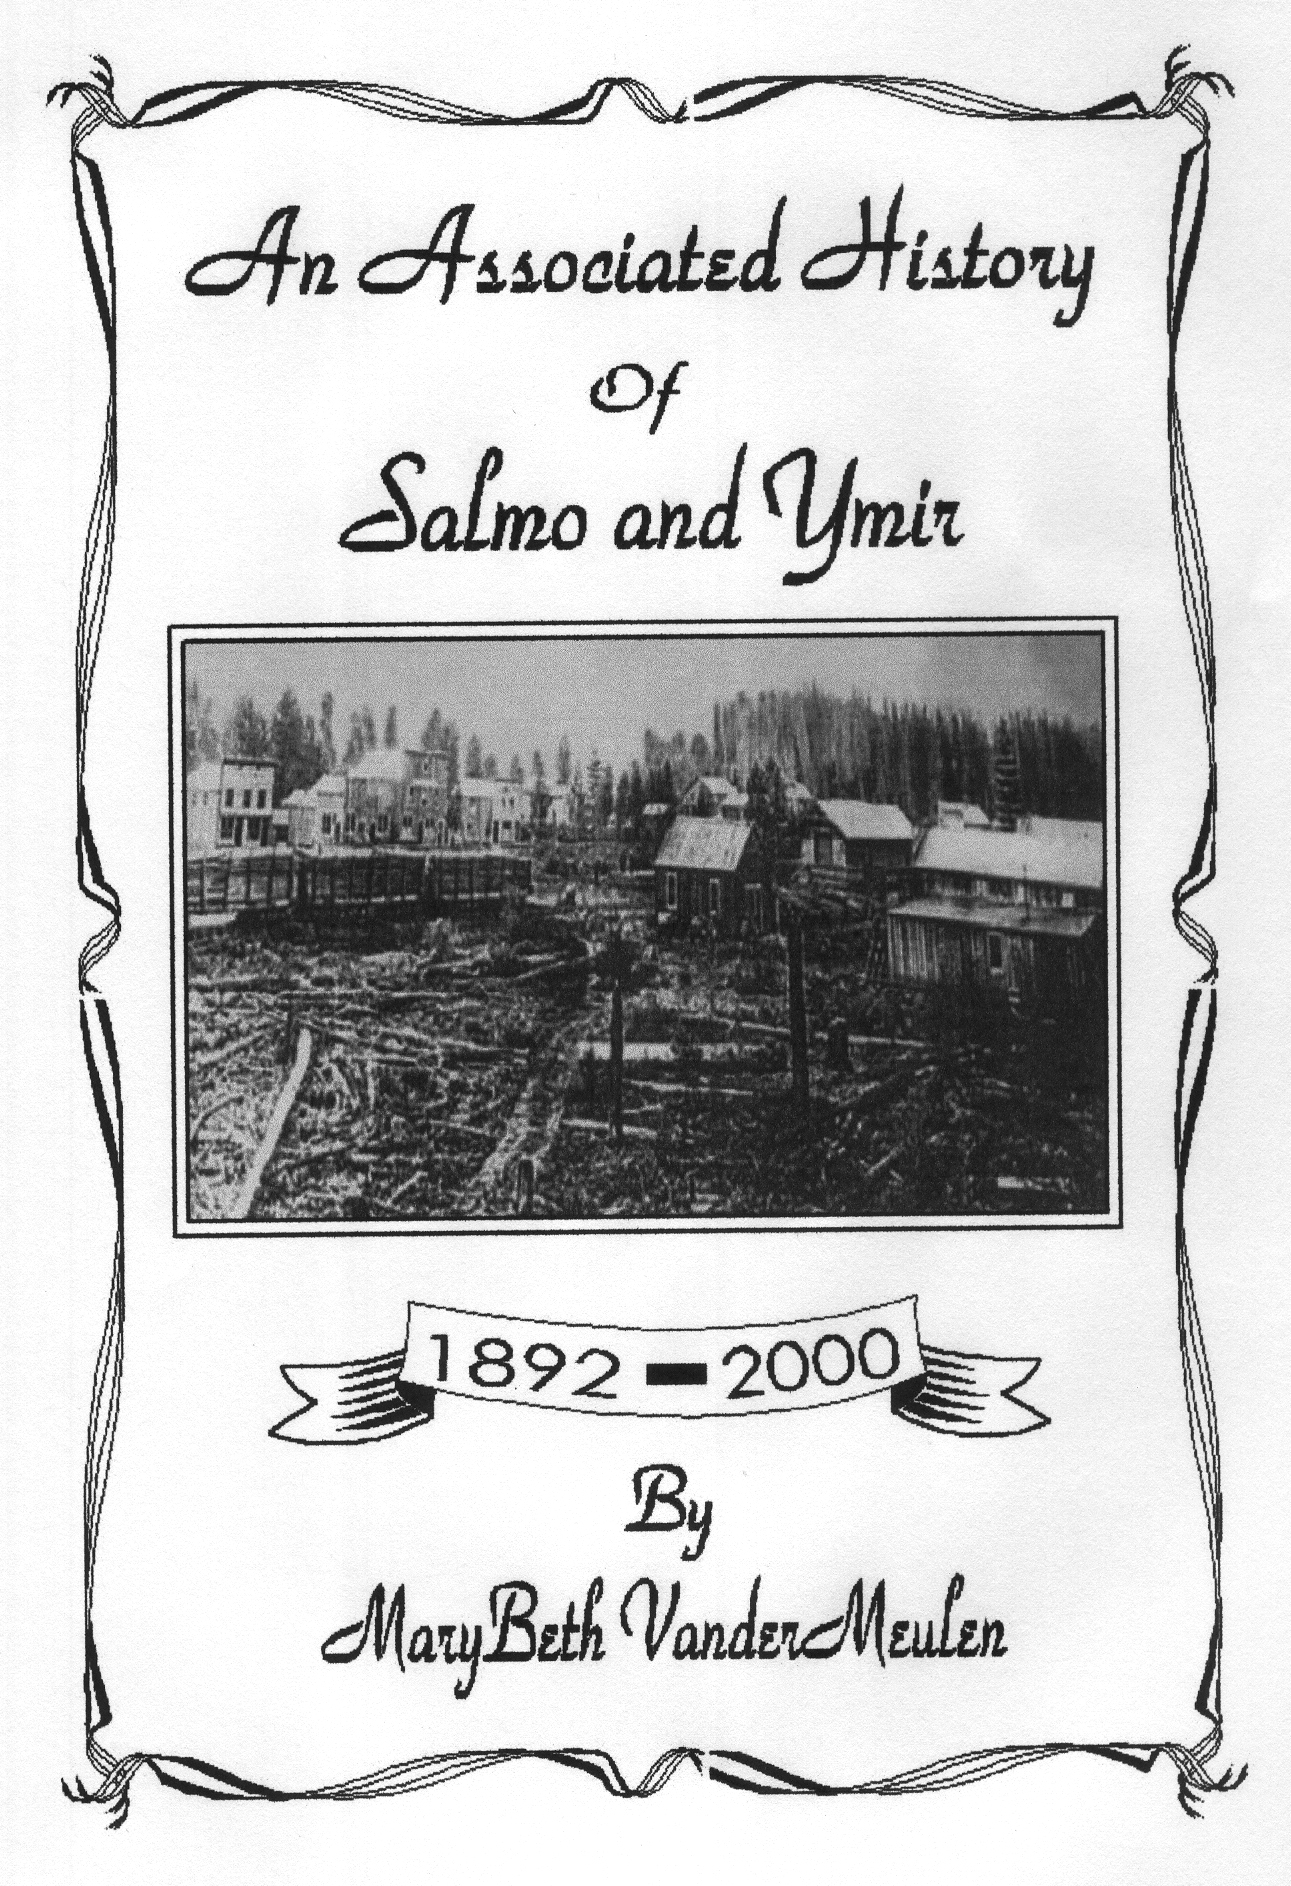 An Associated History of Salmo and Ymir